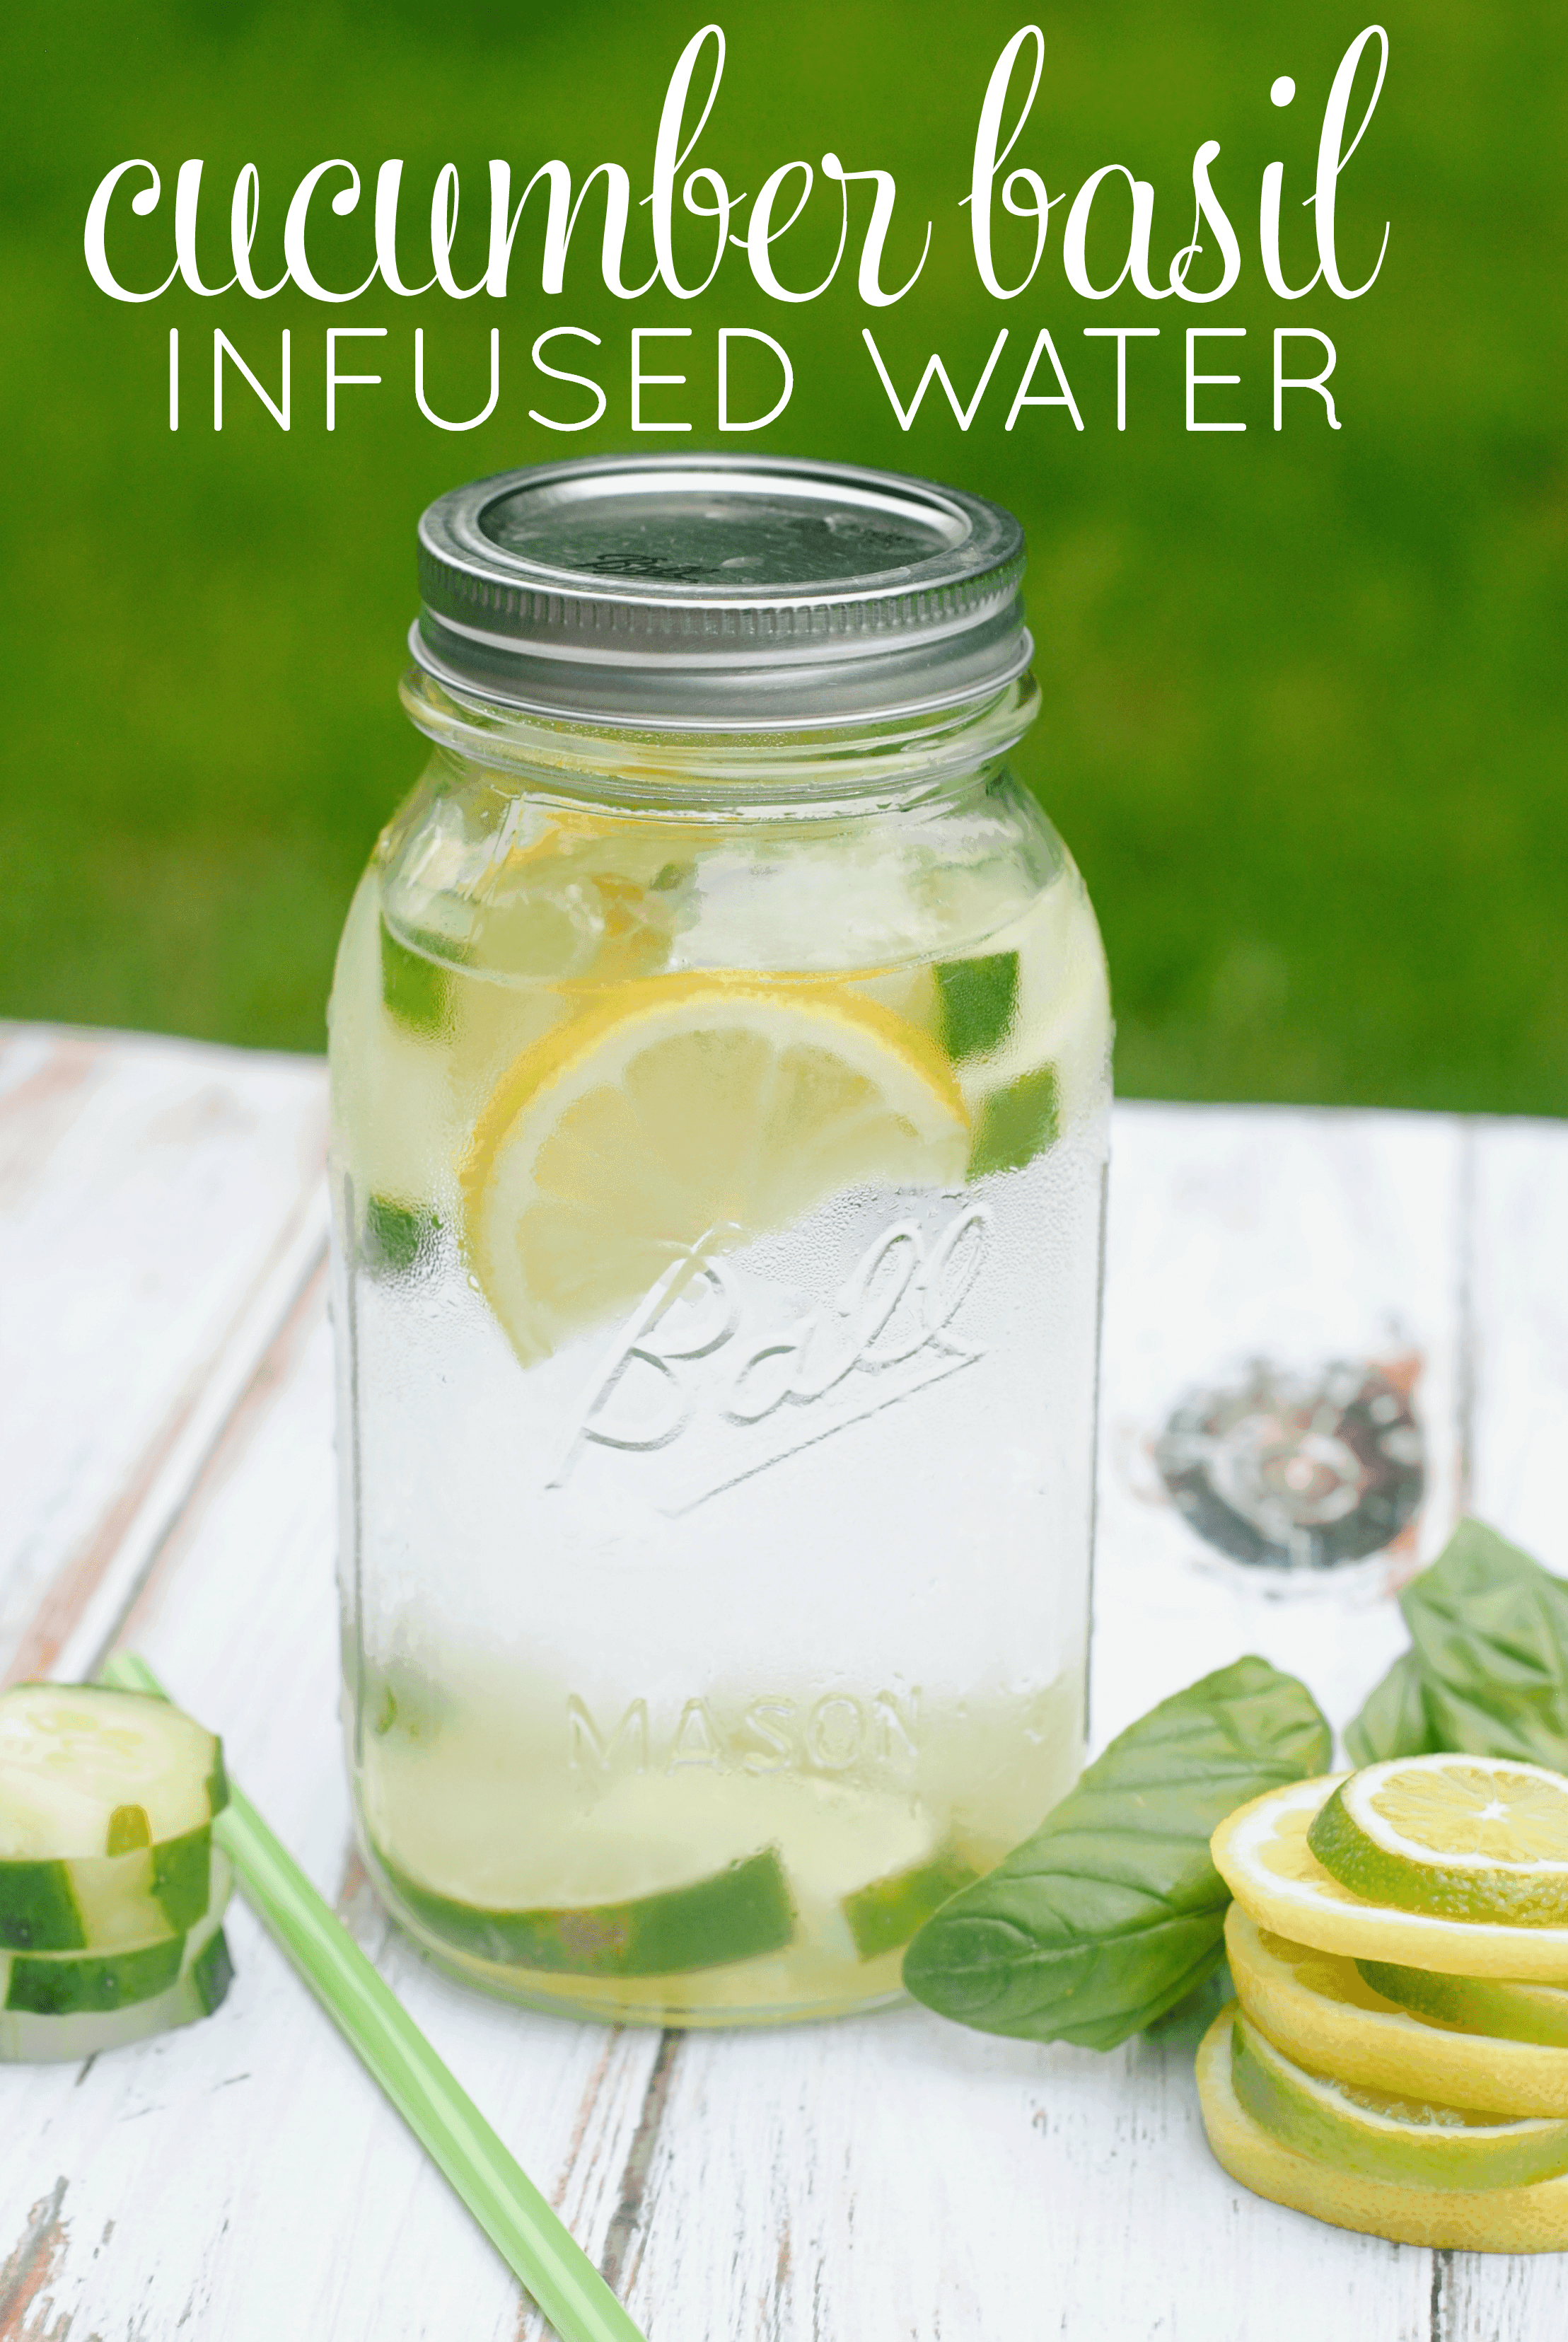 Cucumber Basil Infused Water Recipe